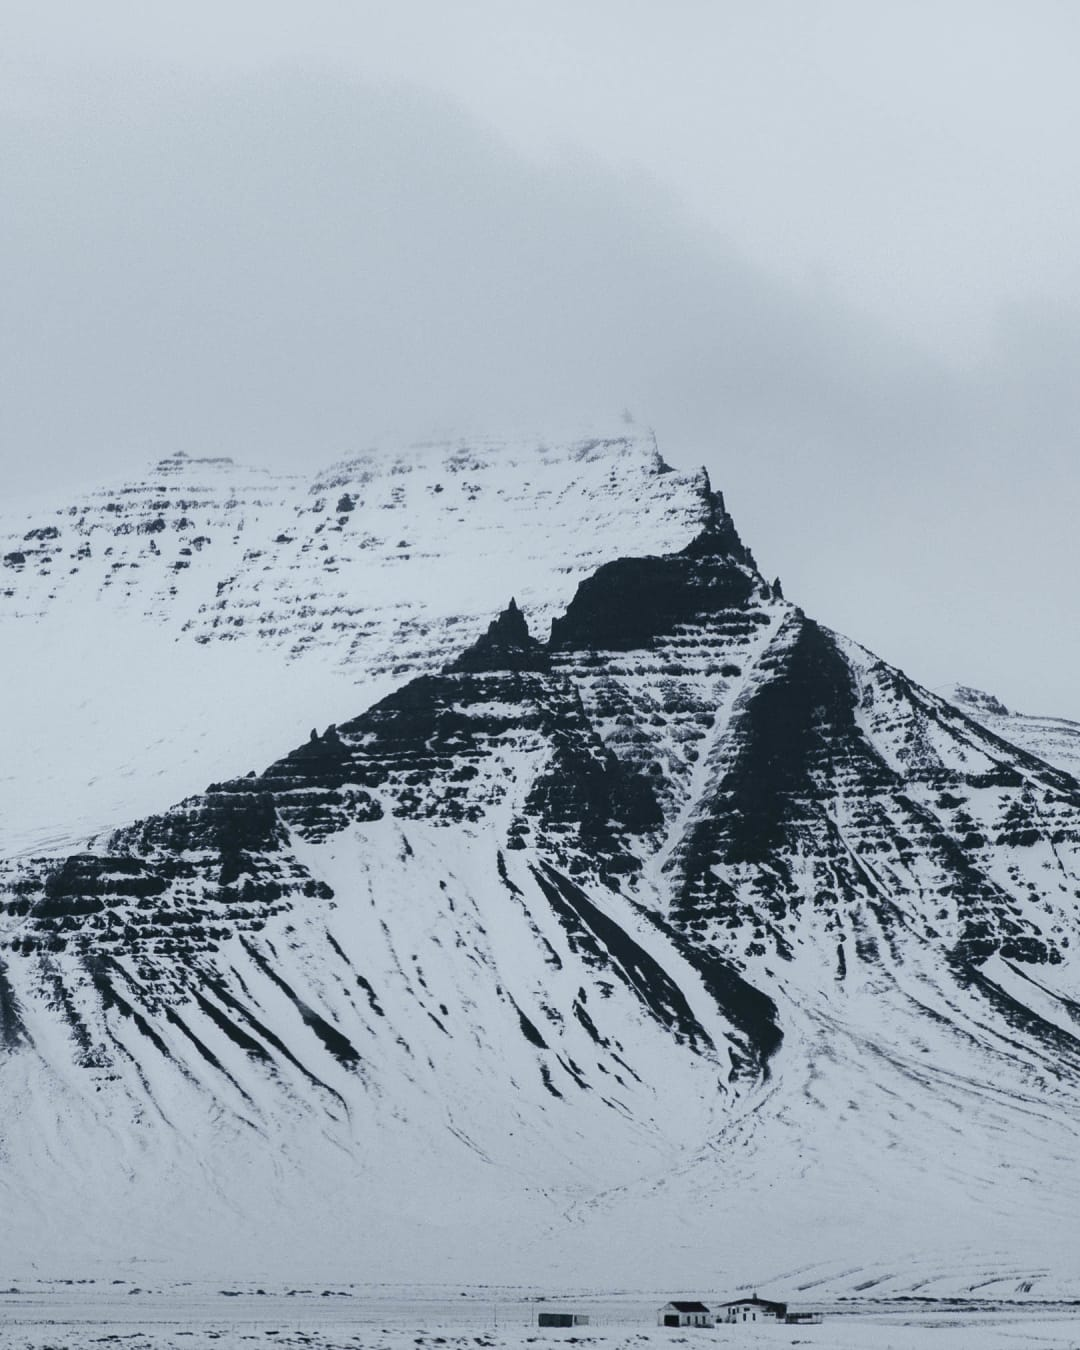 a strong black mountain with white snow on top landscape photography of Iceland